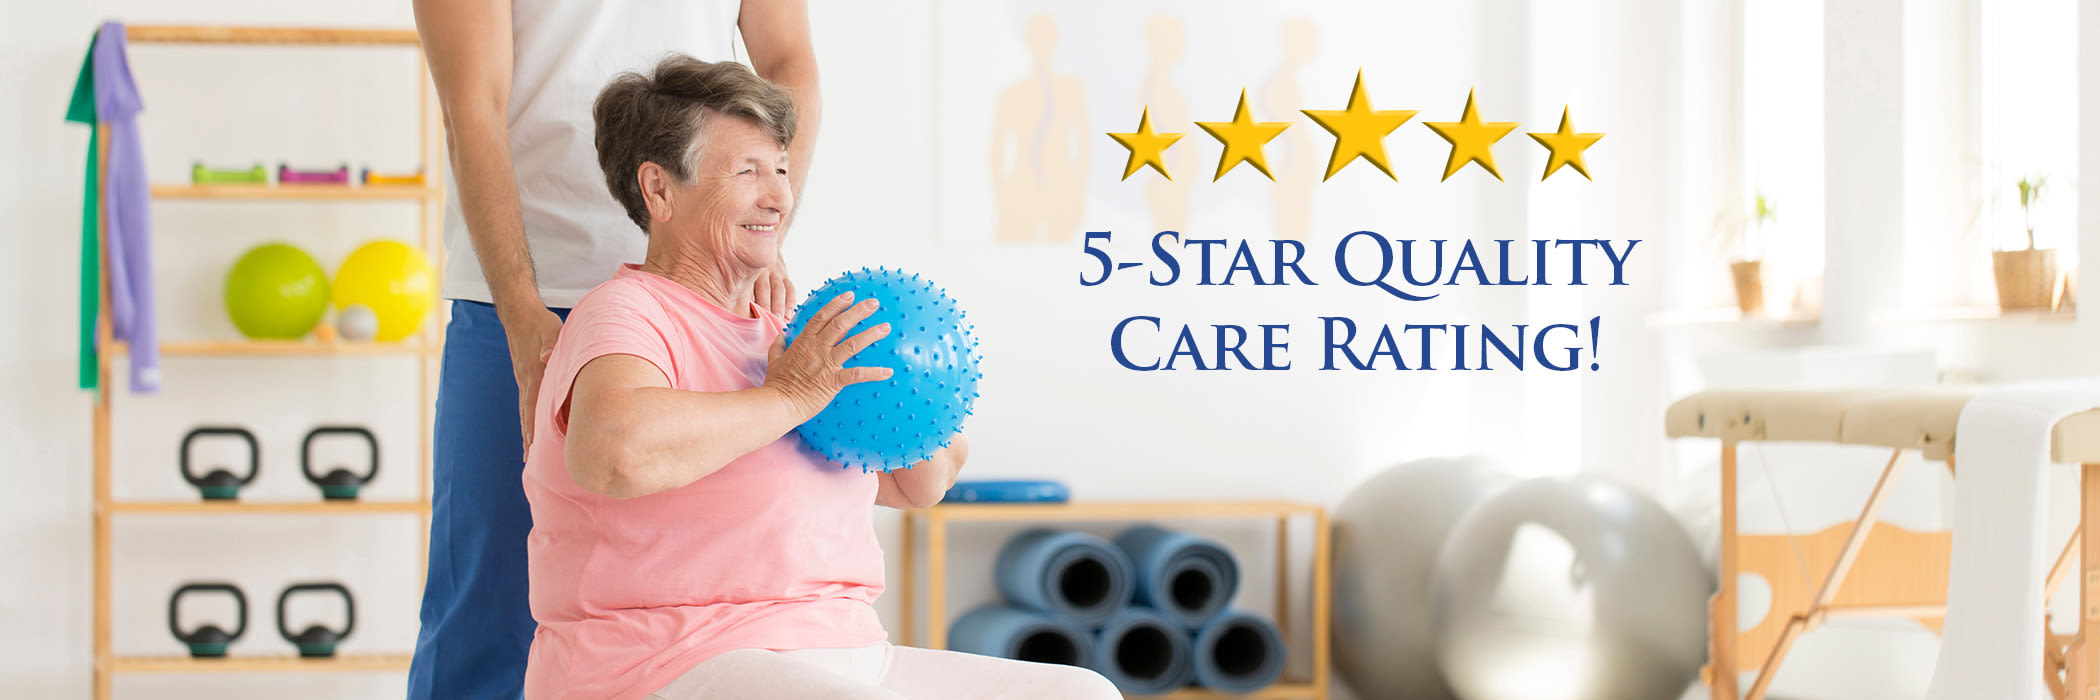 5 Star Quality Care Rating